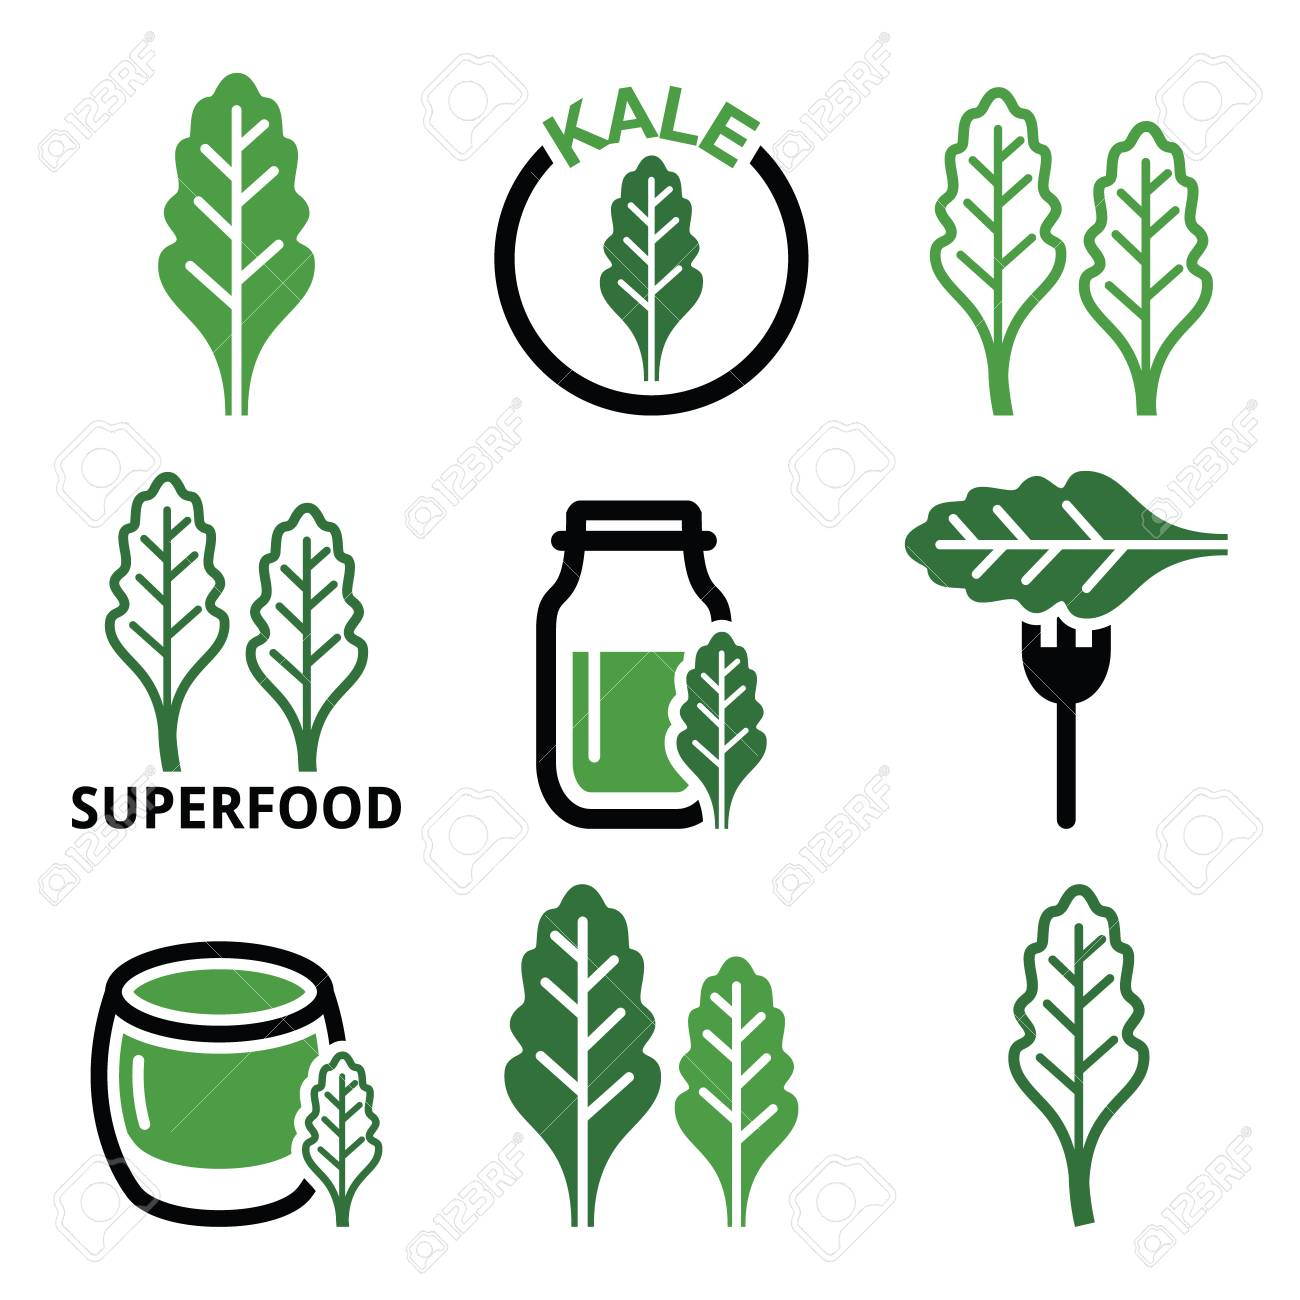 Superfood - kale leaves green icons set - 59597332